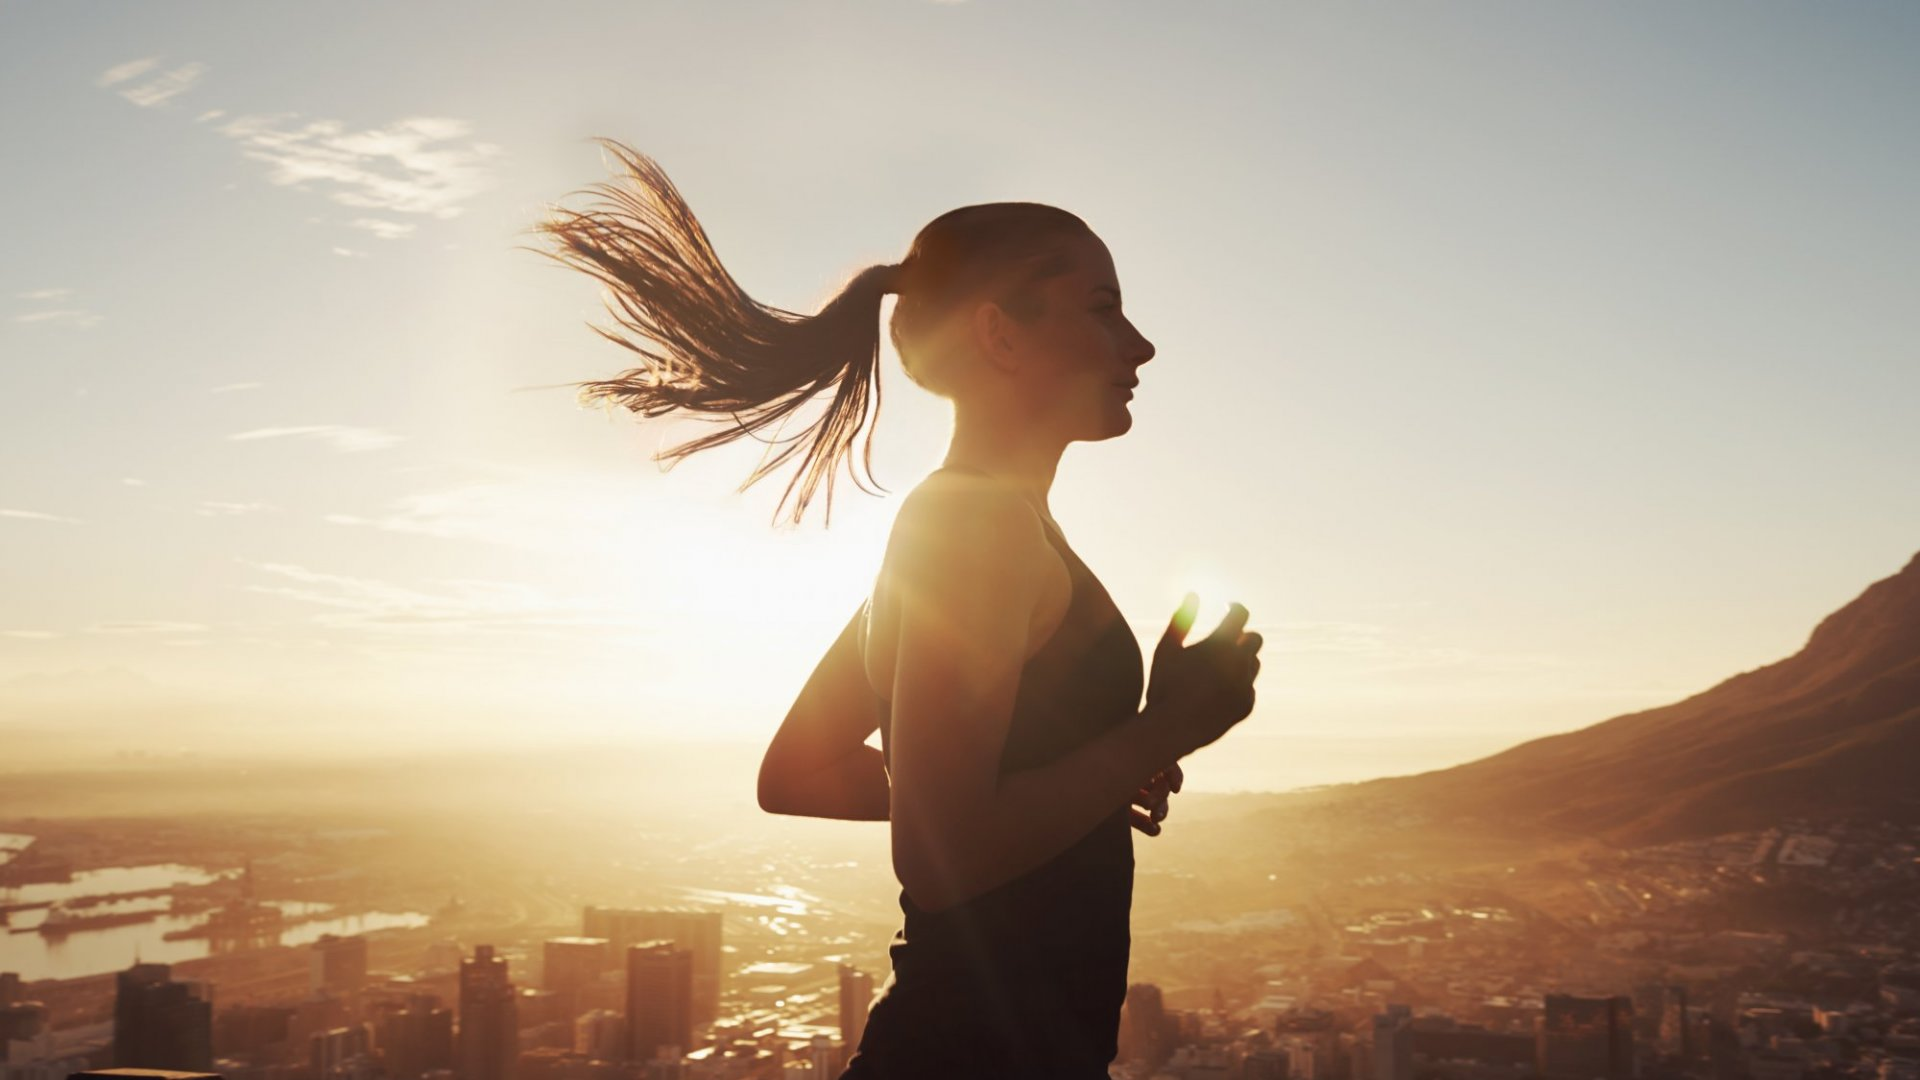 5 Powerful Books to Evolve Your Mind Body & Spirit This Summer